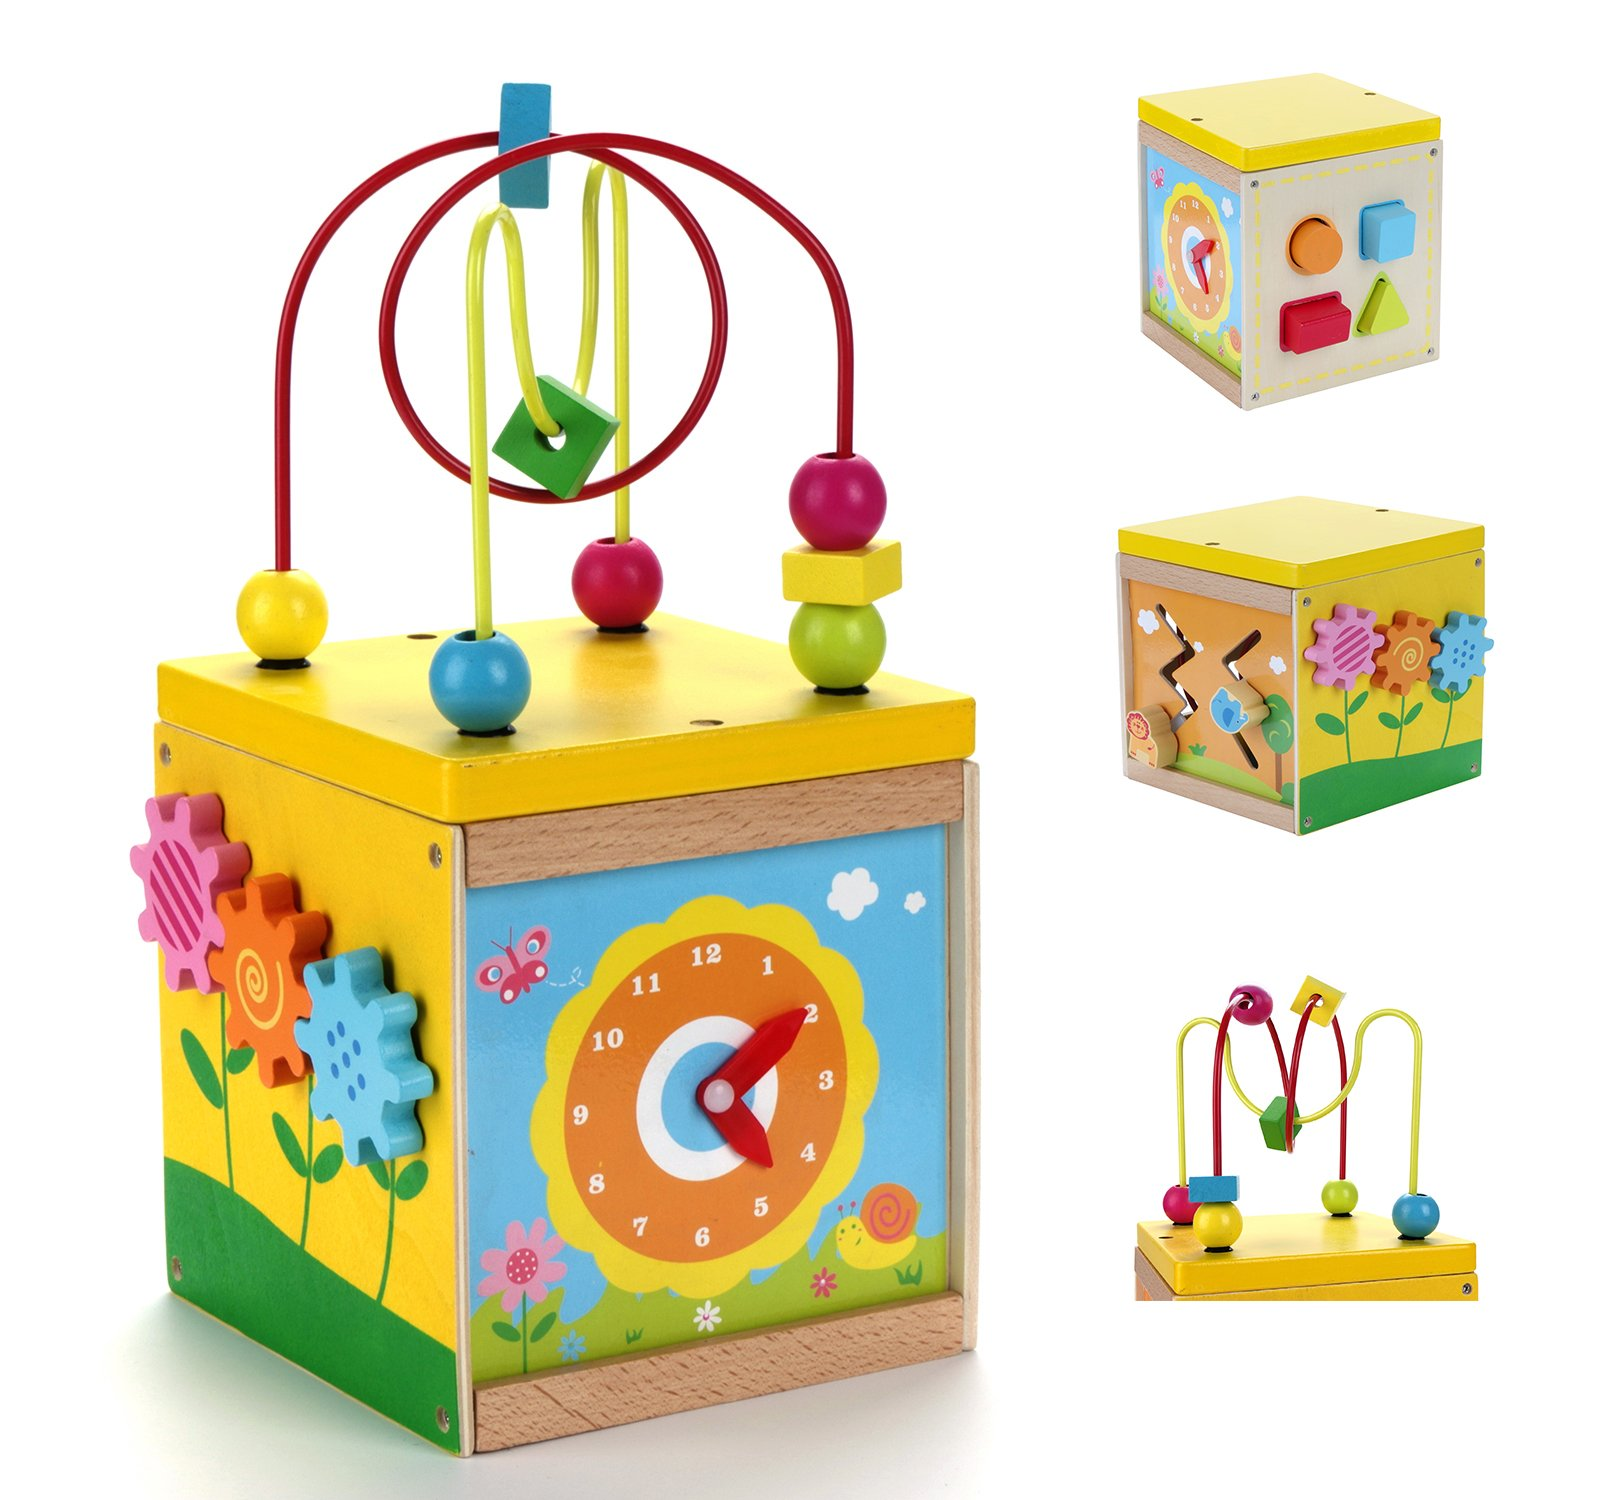 USATDD Activity Cube Toys Baby Educational Wooden Bead Maze Shape Sorter for 1 Year Old Boy and Girl Toddlers Gift Small Size